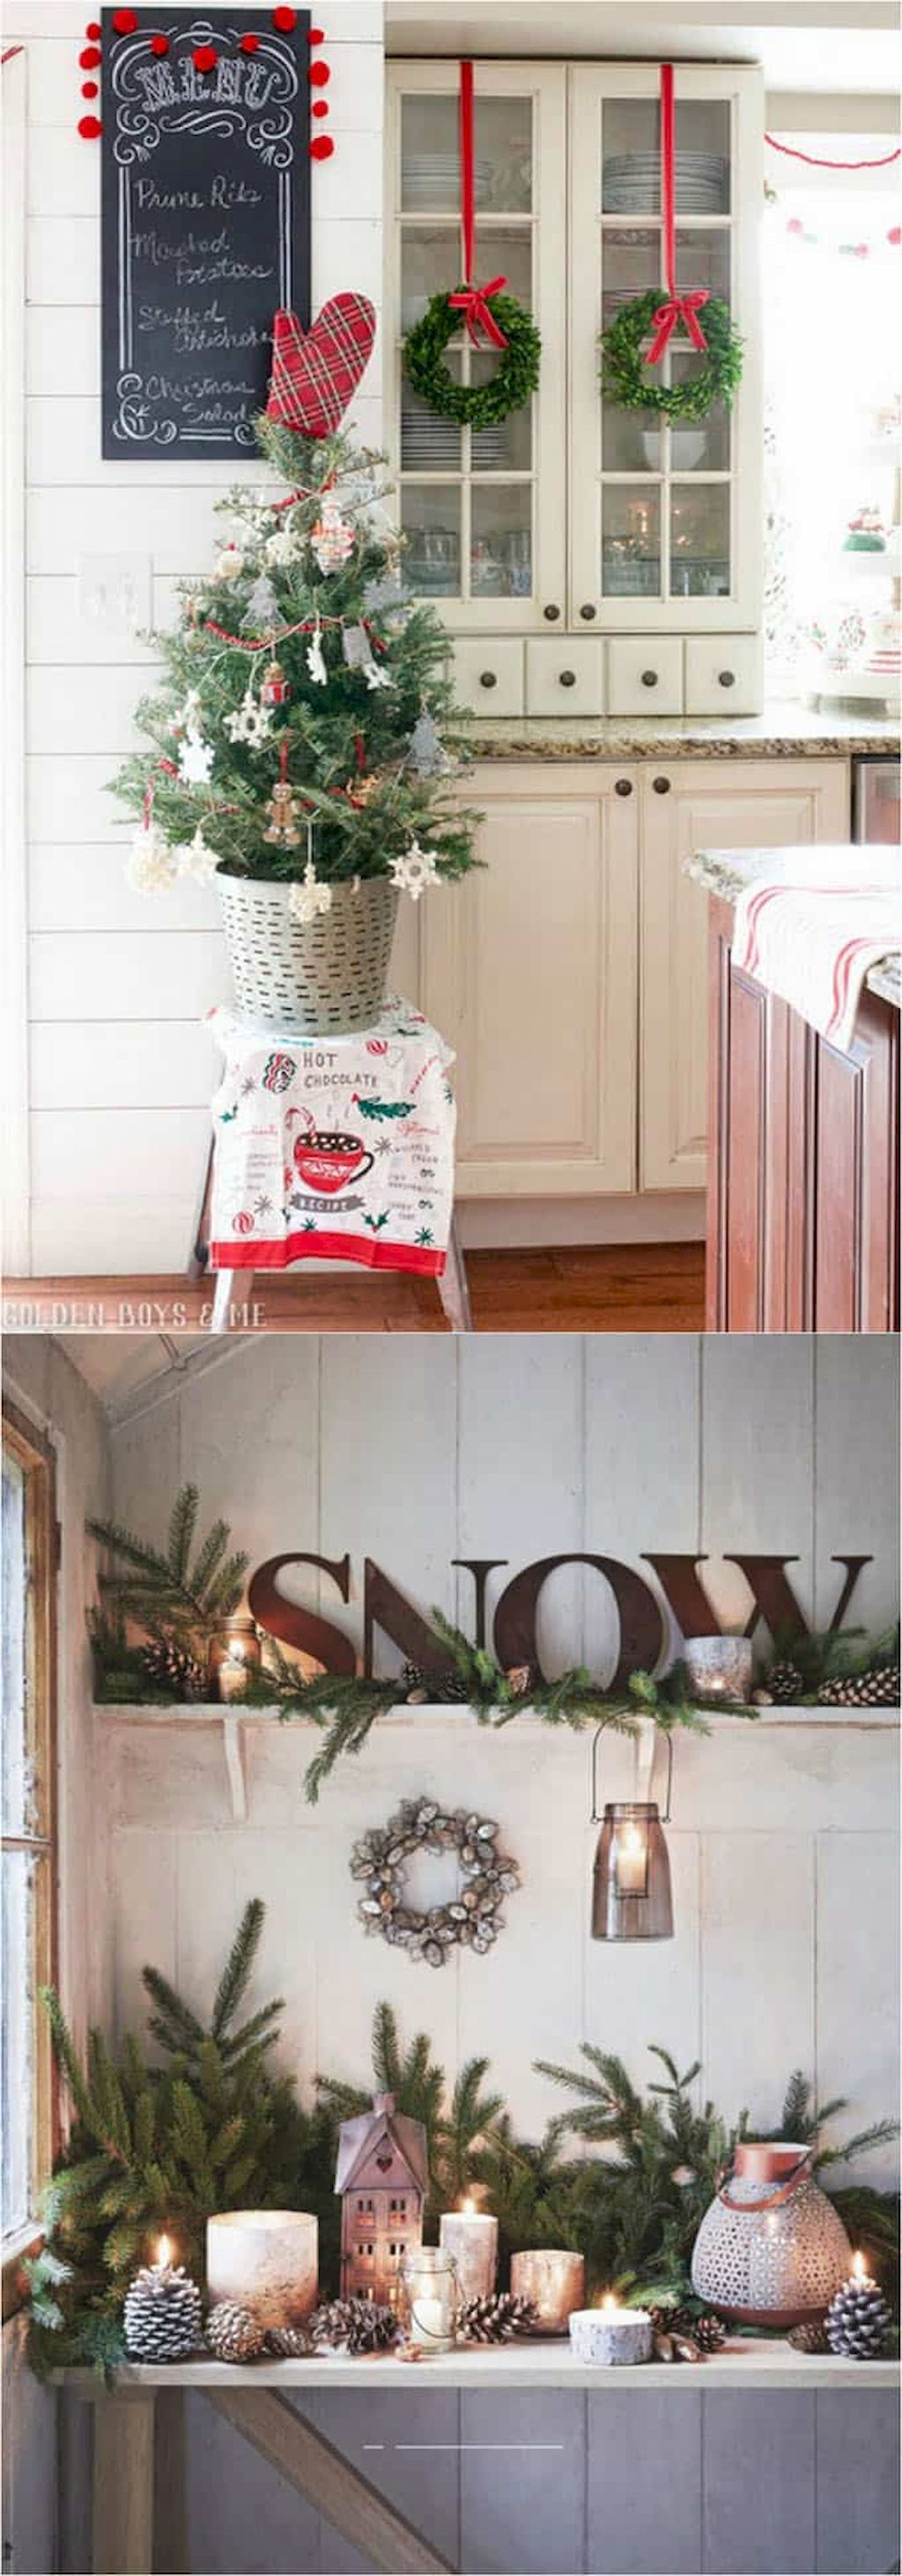 41 favorite christmas decorating ideas for every room in your home 26 farmhouse christmas on kitchen xmas decor id=42188